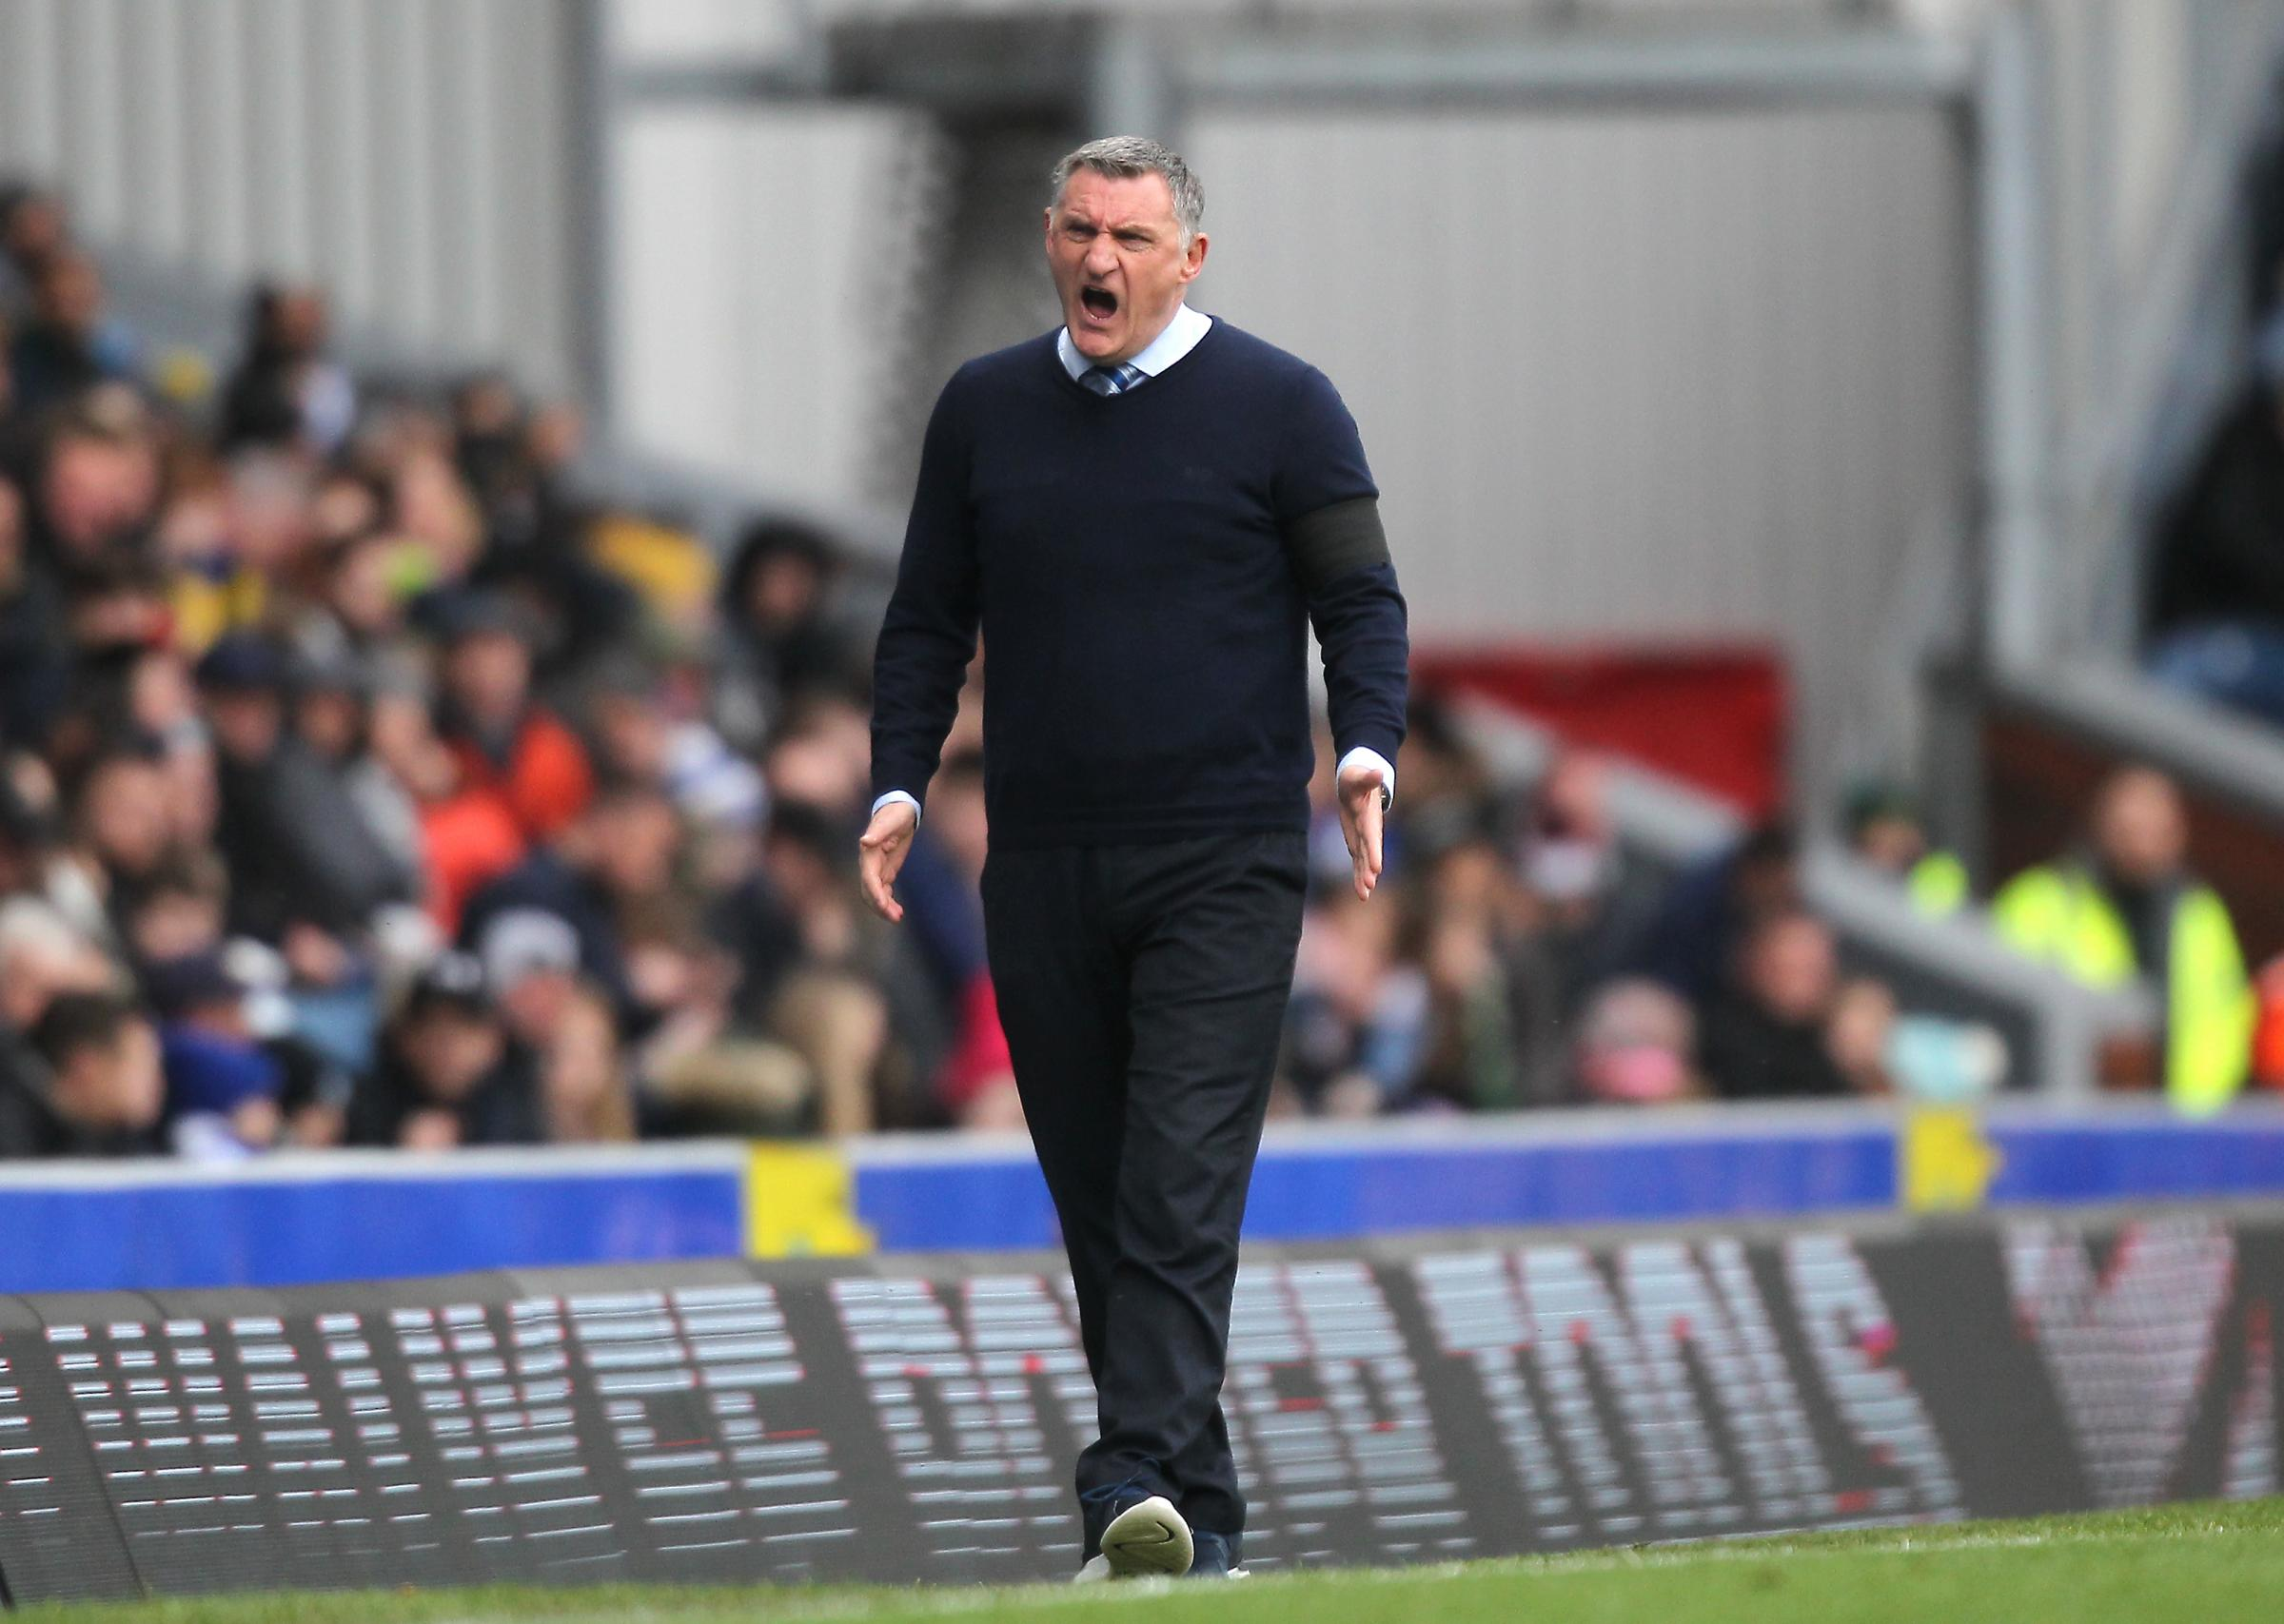 Tony Mowbray has seen his side lose six of their last seven league matches